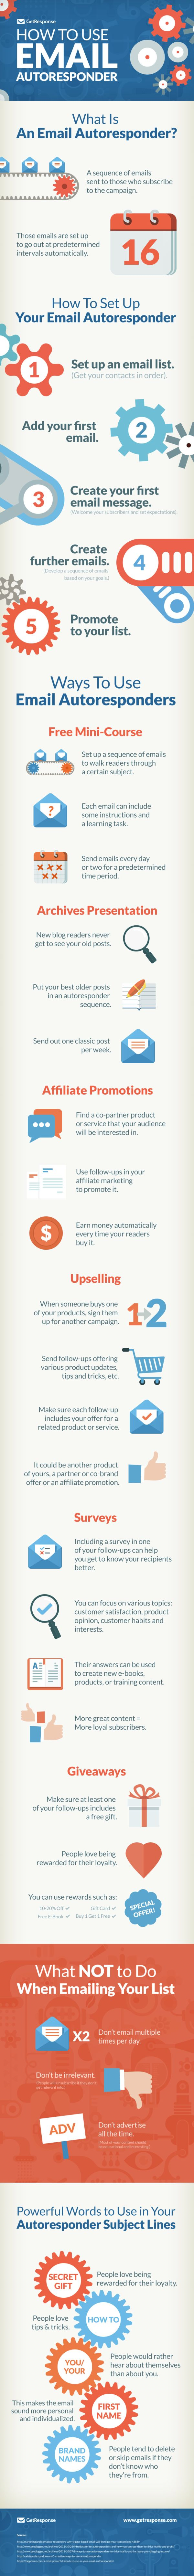 How to use email autoresponders - #infographic. I use aweber for my email autoresponder, the most reasonable with the most functionality on the market. You can check it out for only $1. Click here for more information: http://www.theonlinevideomarketer.com/aweber